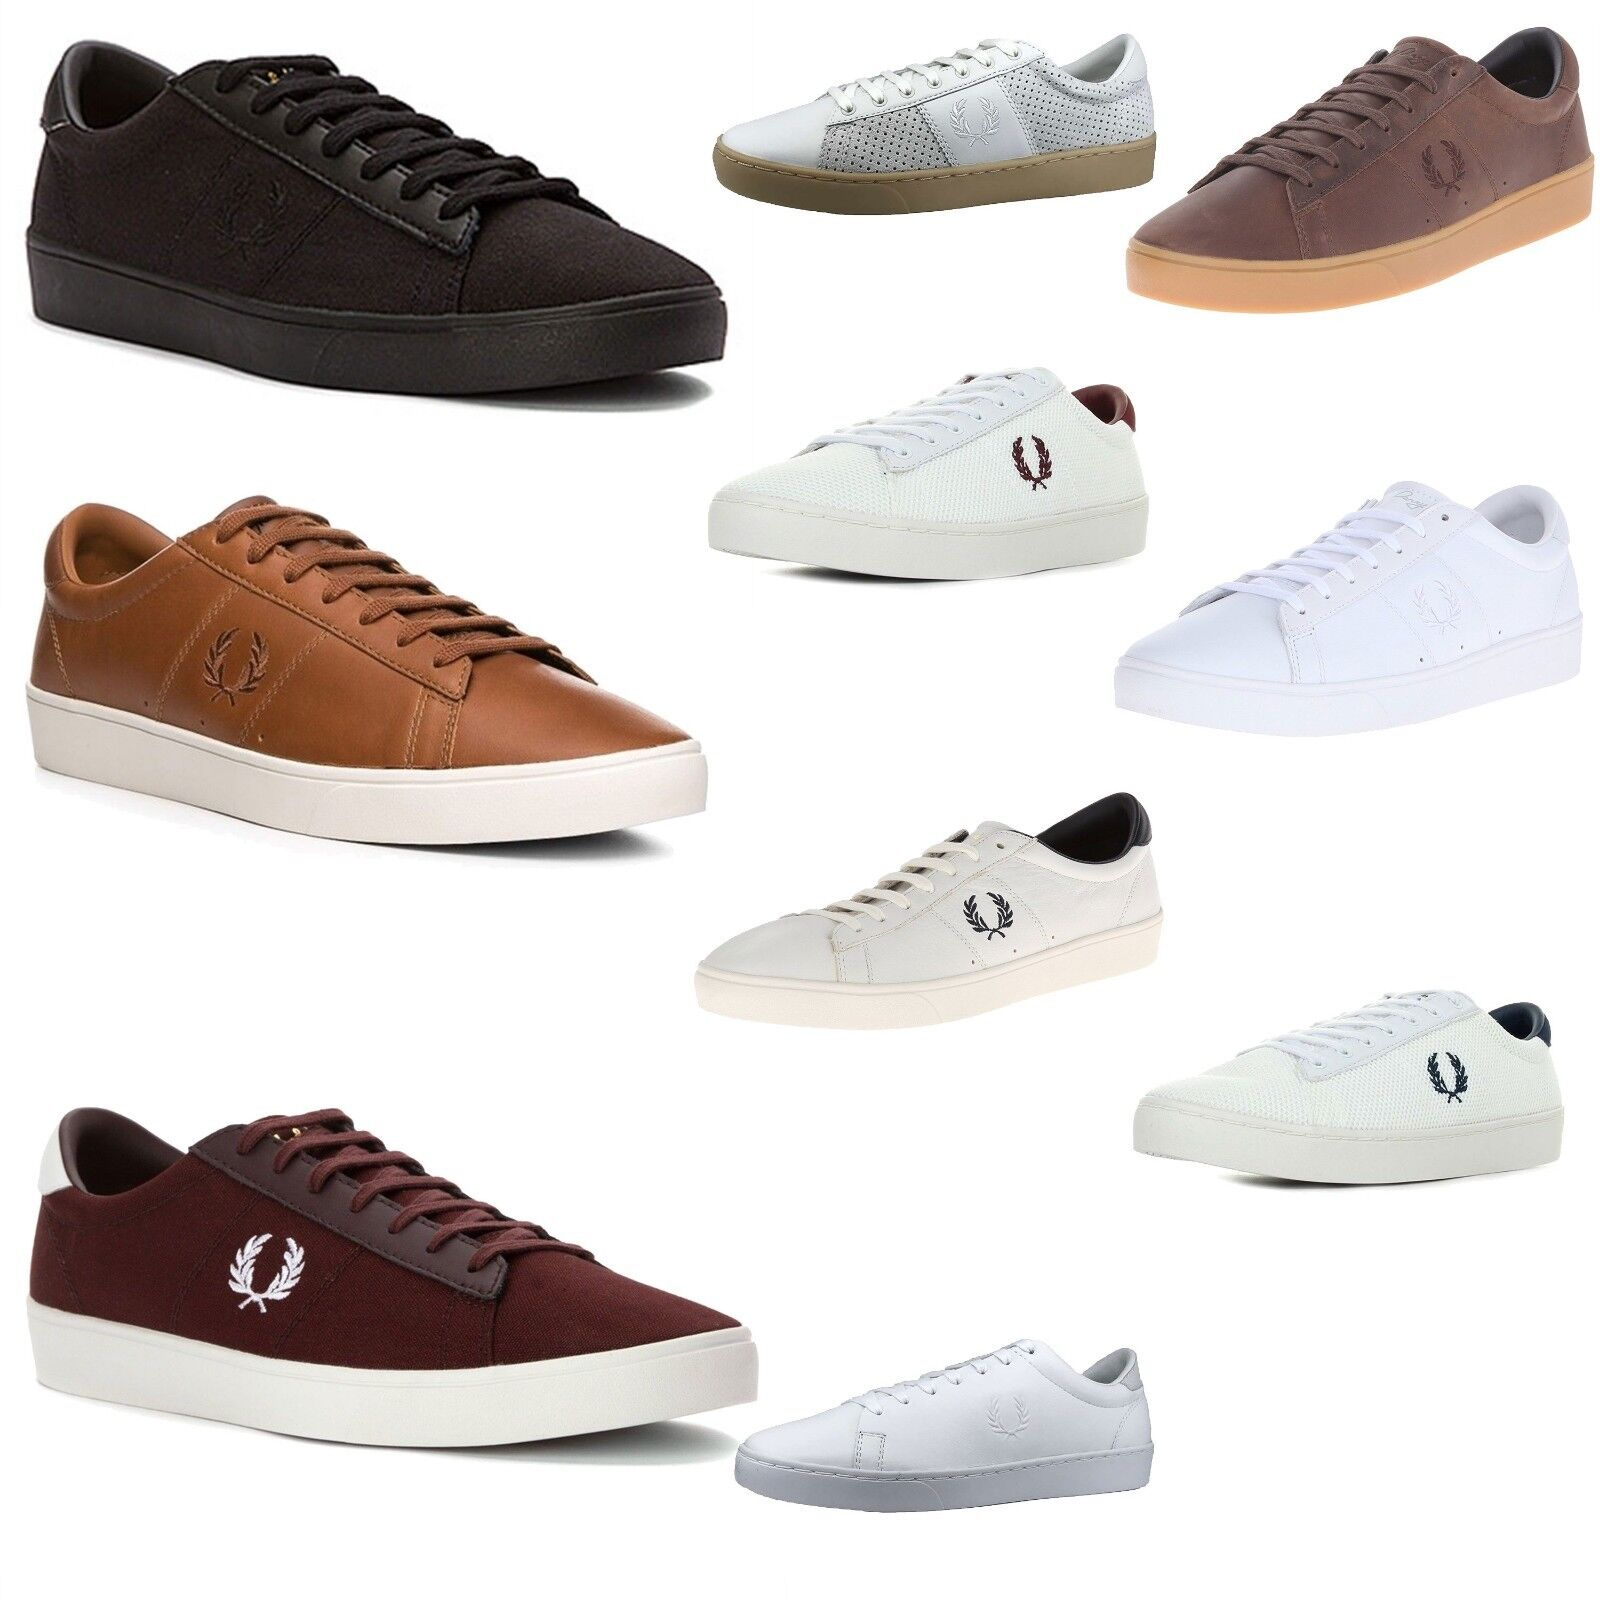 Scarpe casual da uomo  Fred Perry uomo Spencer Mesh/Suede/Canvas/Leather Tennis Sneakers Casual Shoes